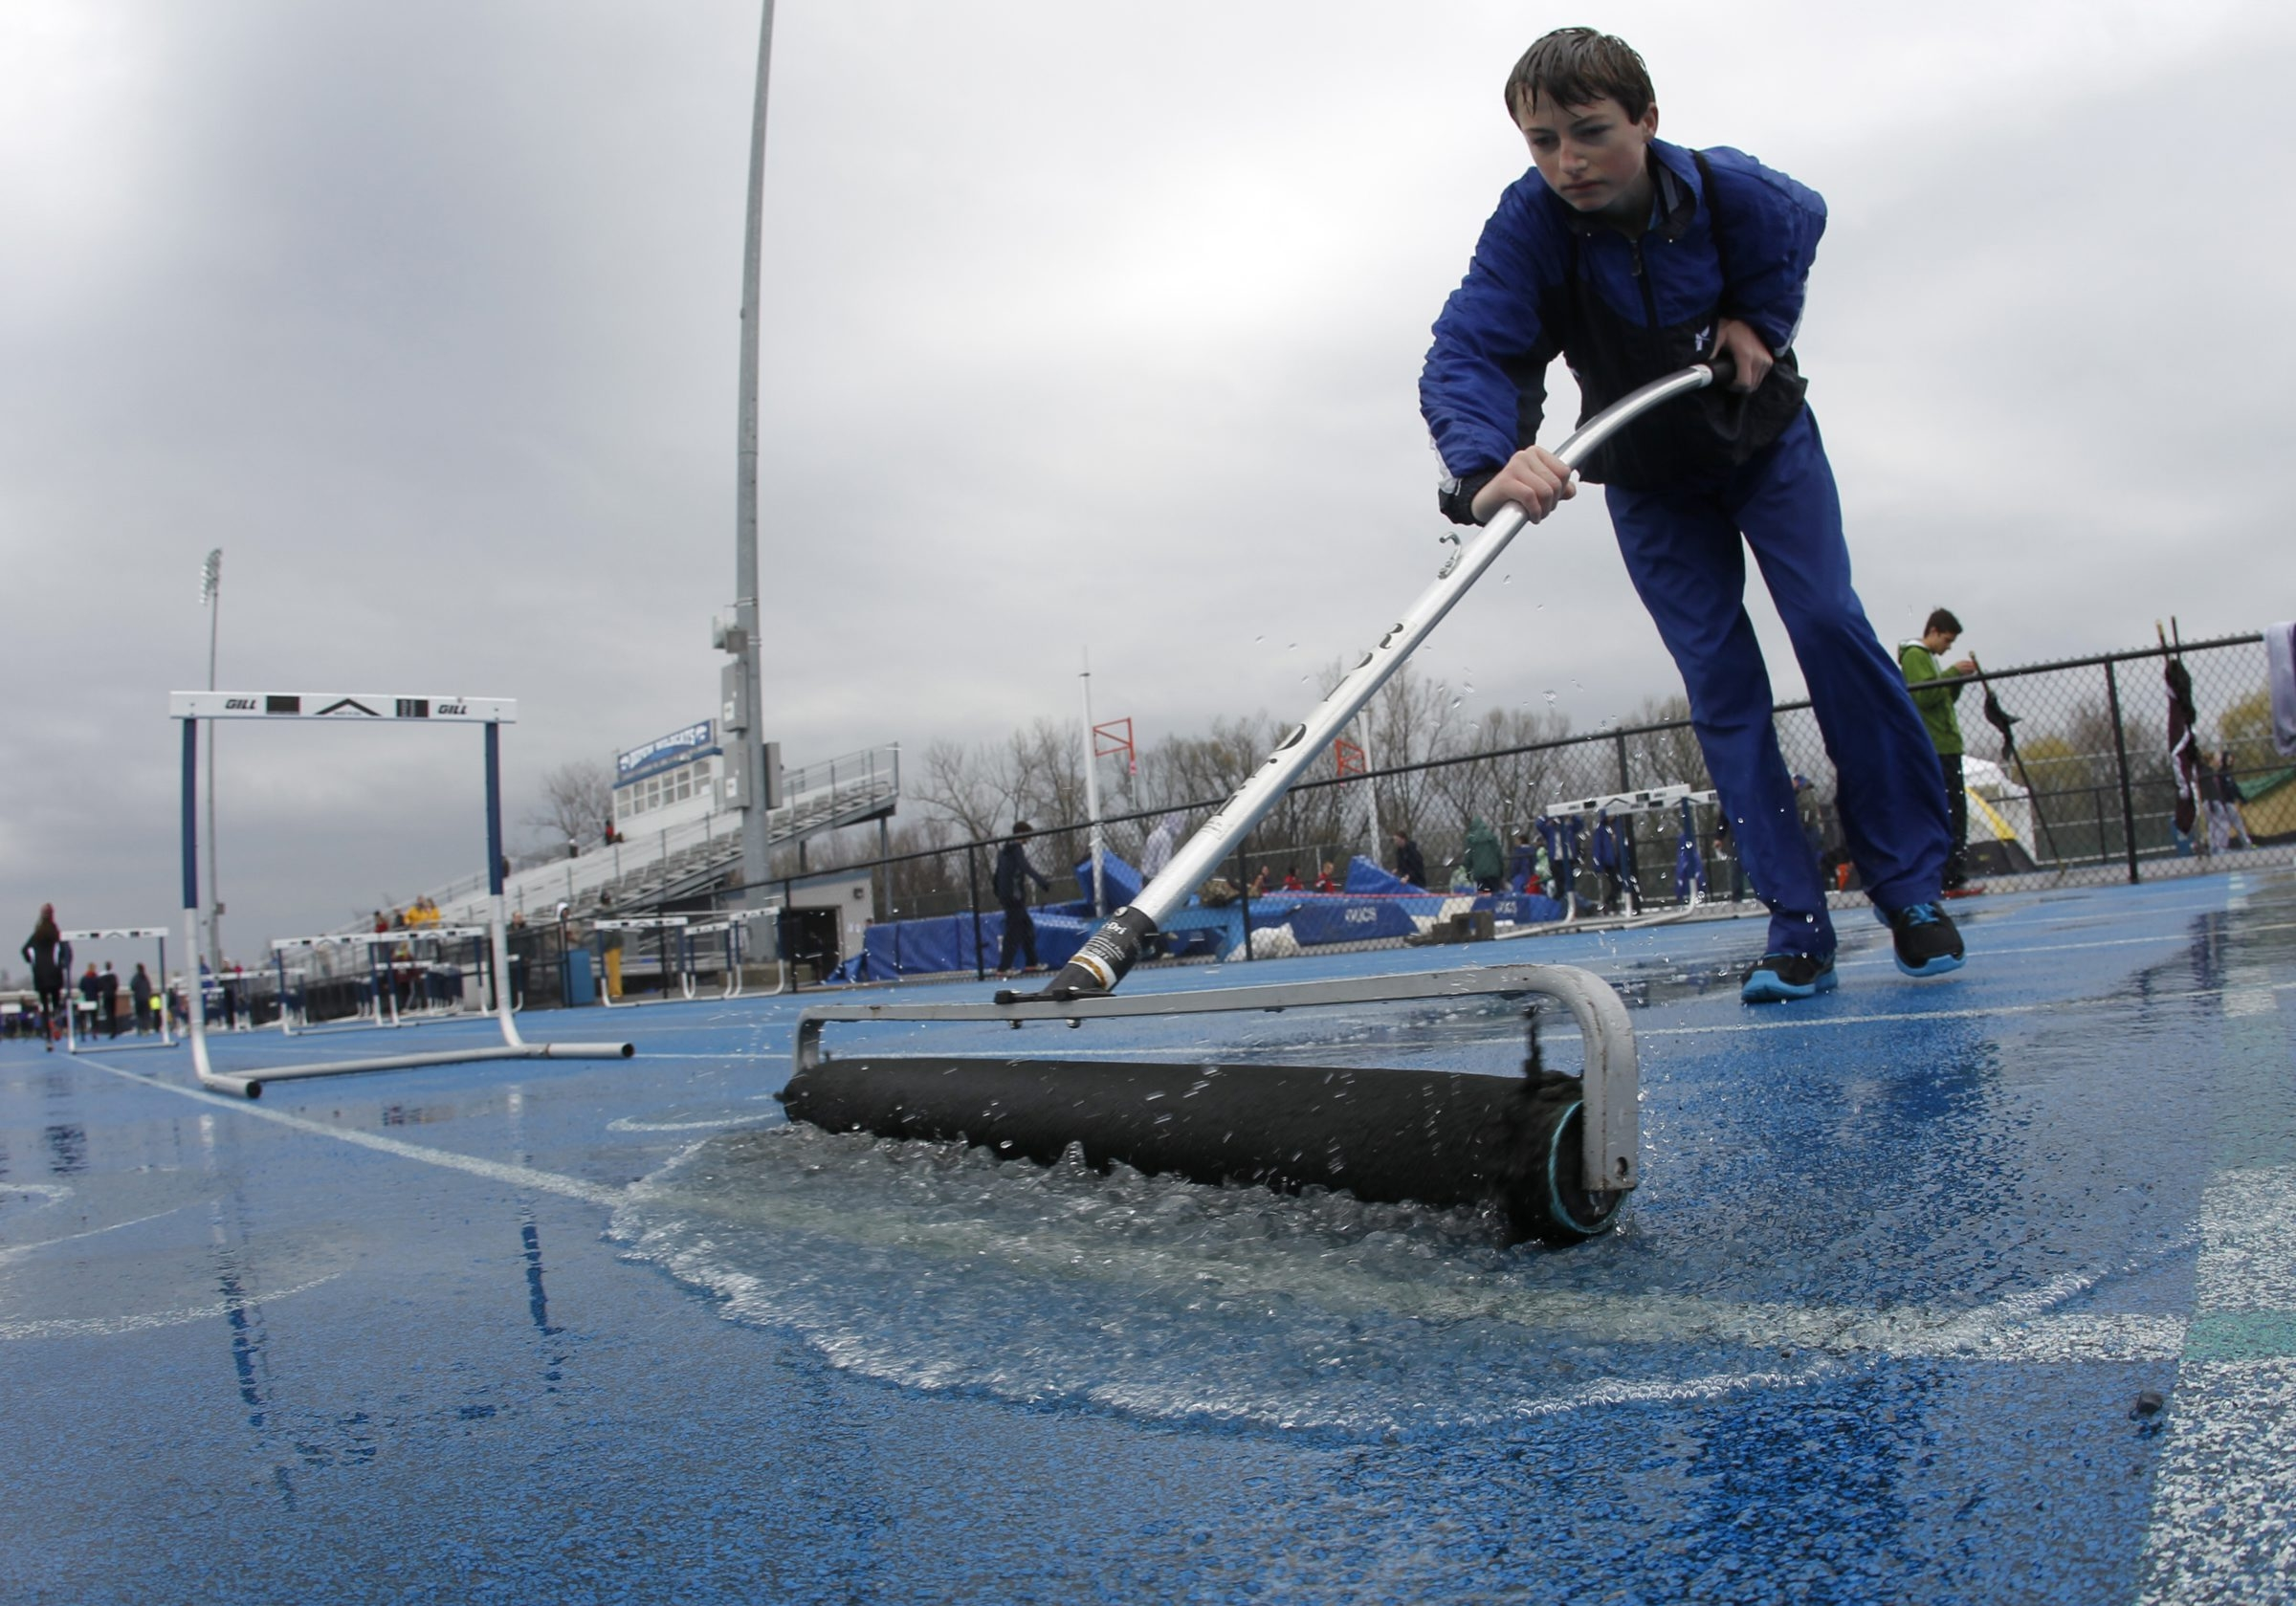 Kyle Kavanagh,16, works on squeegeeing the water from the track prior to the Depew Wildcat relays at Depew on April 26. Harry Scull Jr. /Buffalo News